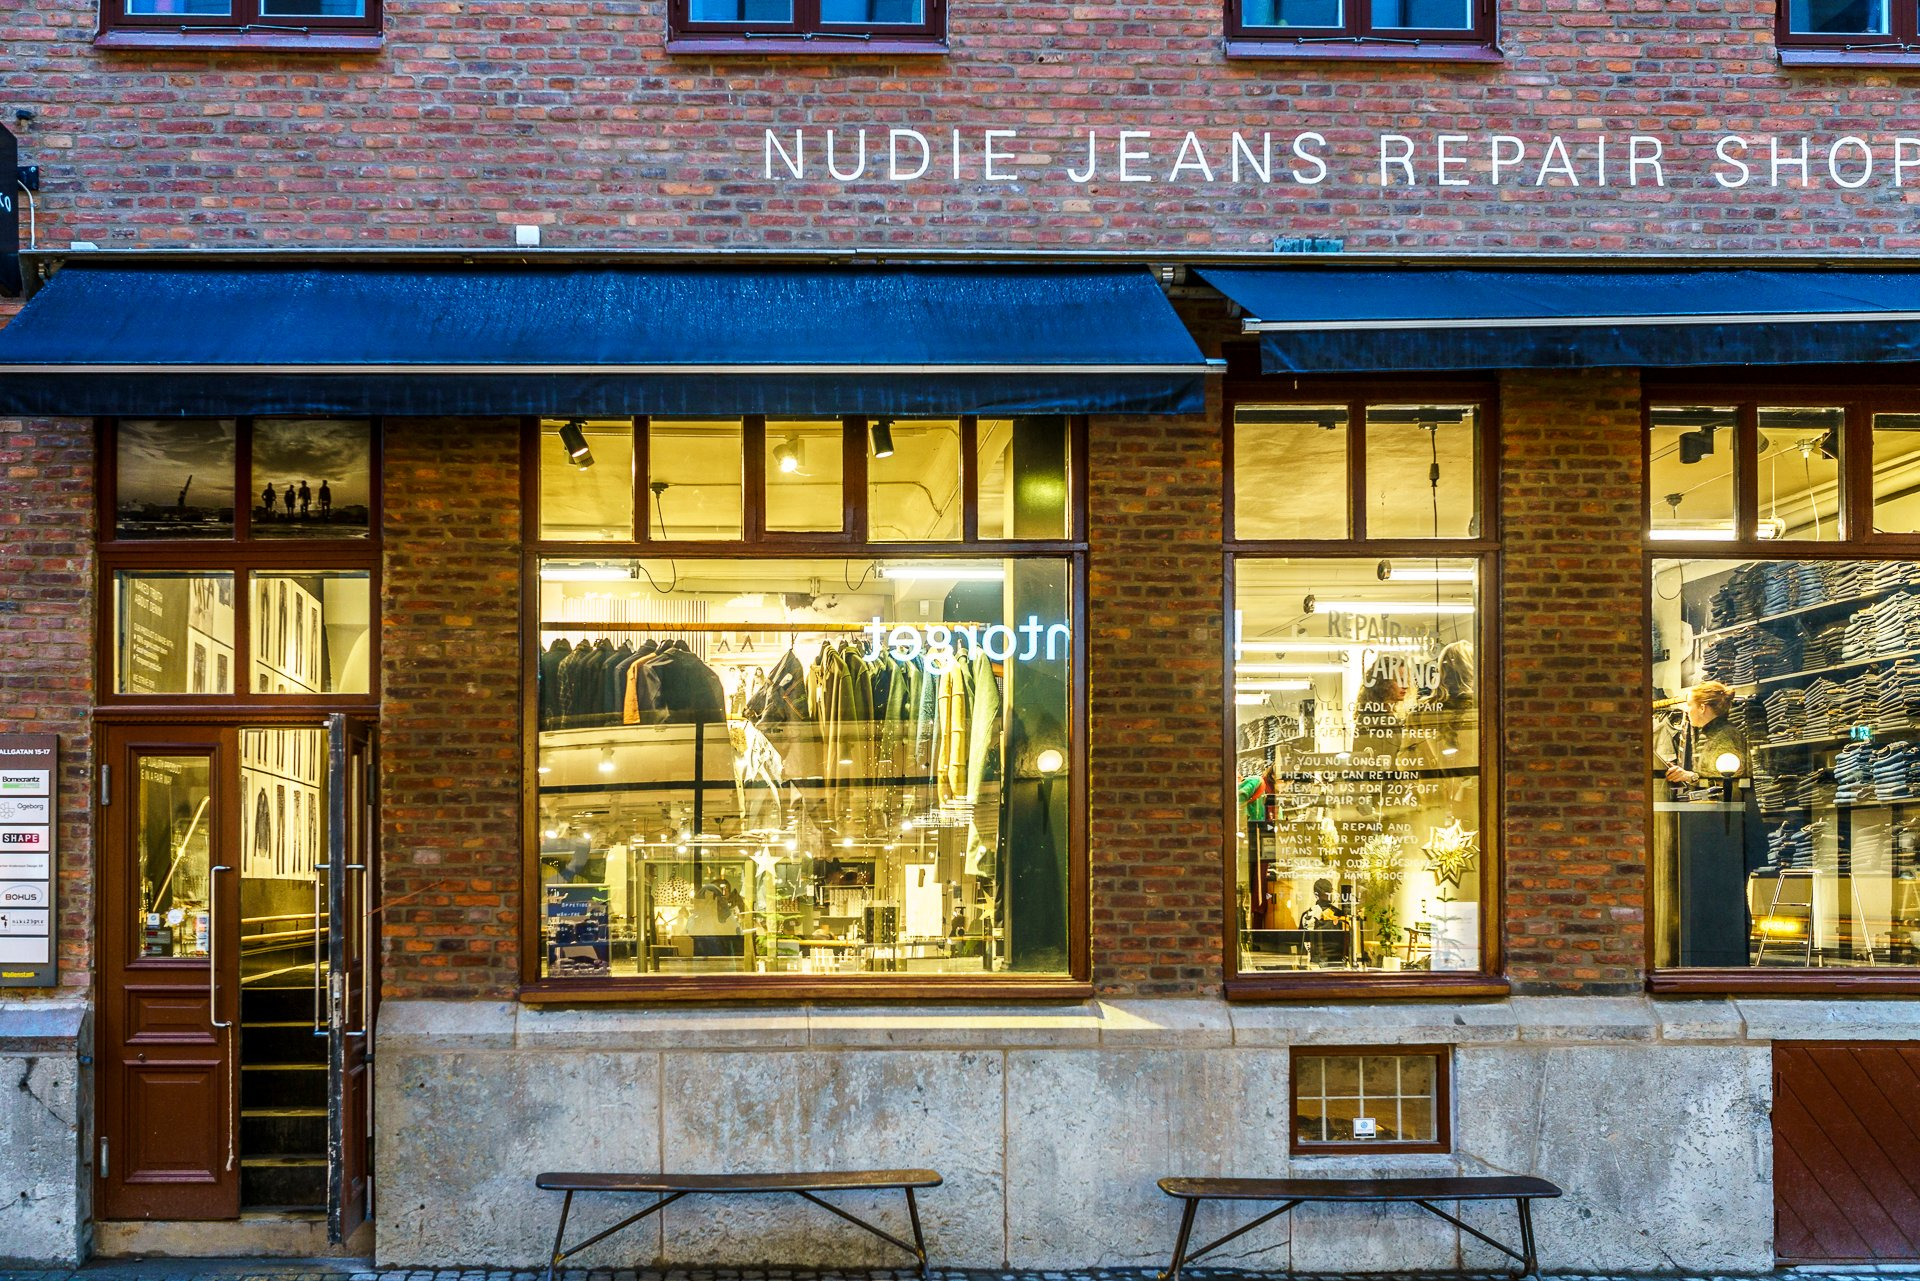 nudie-jeans-repair-shop